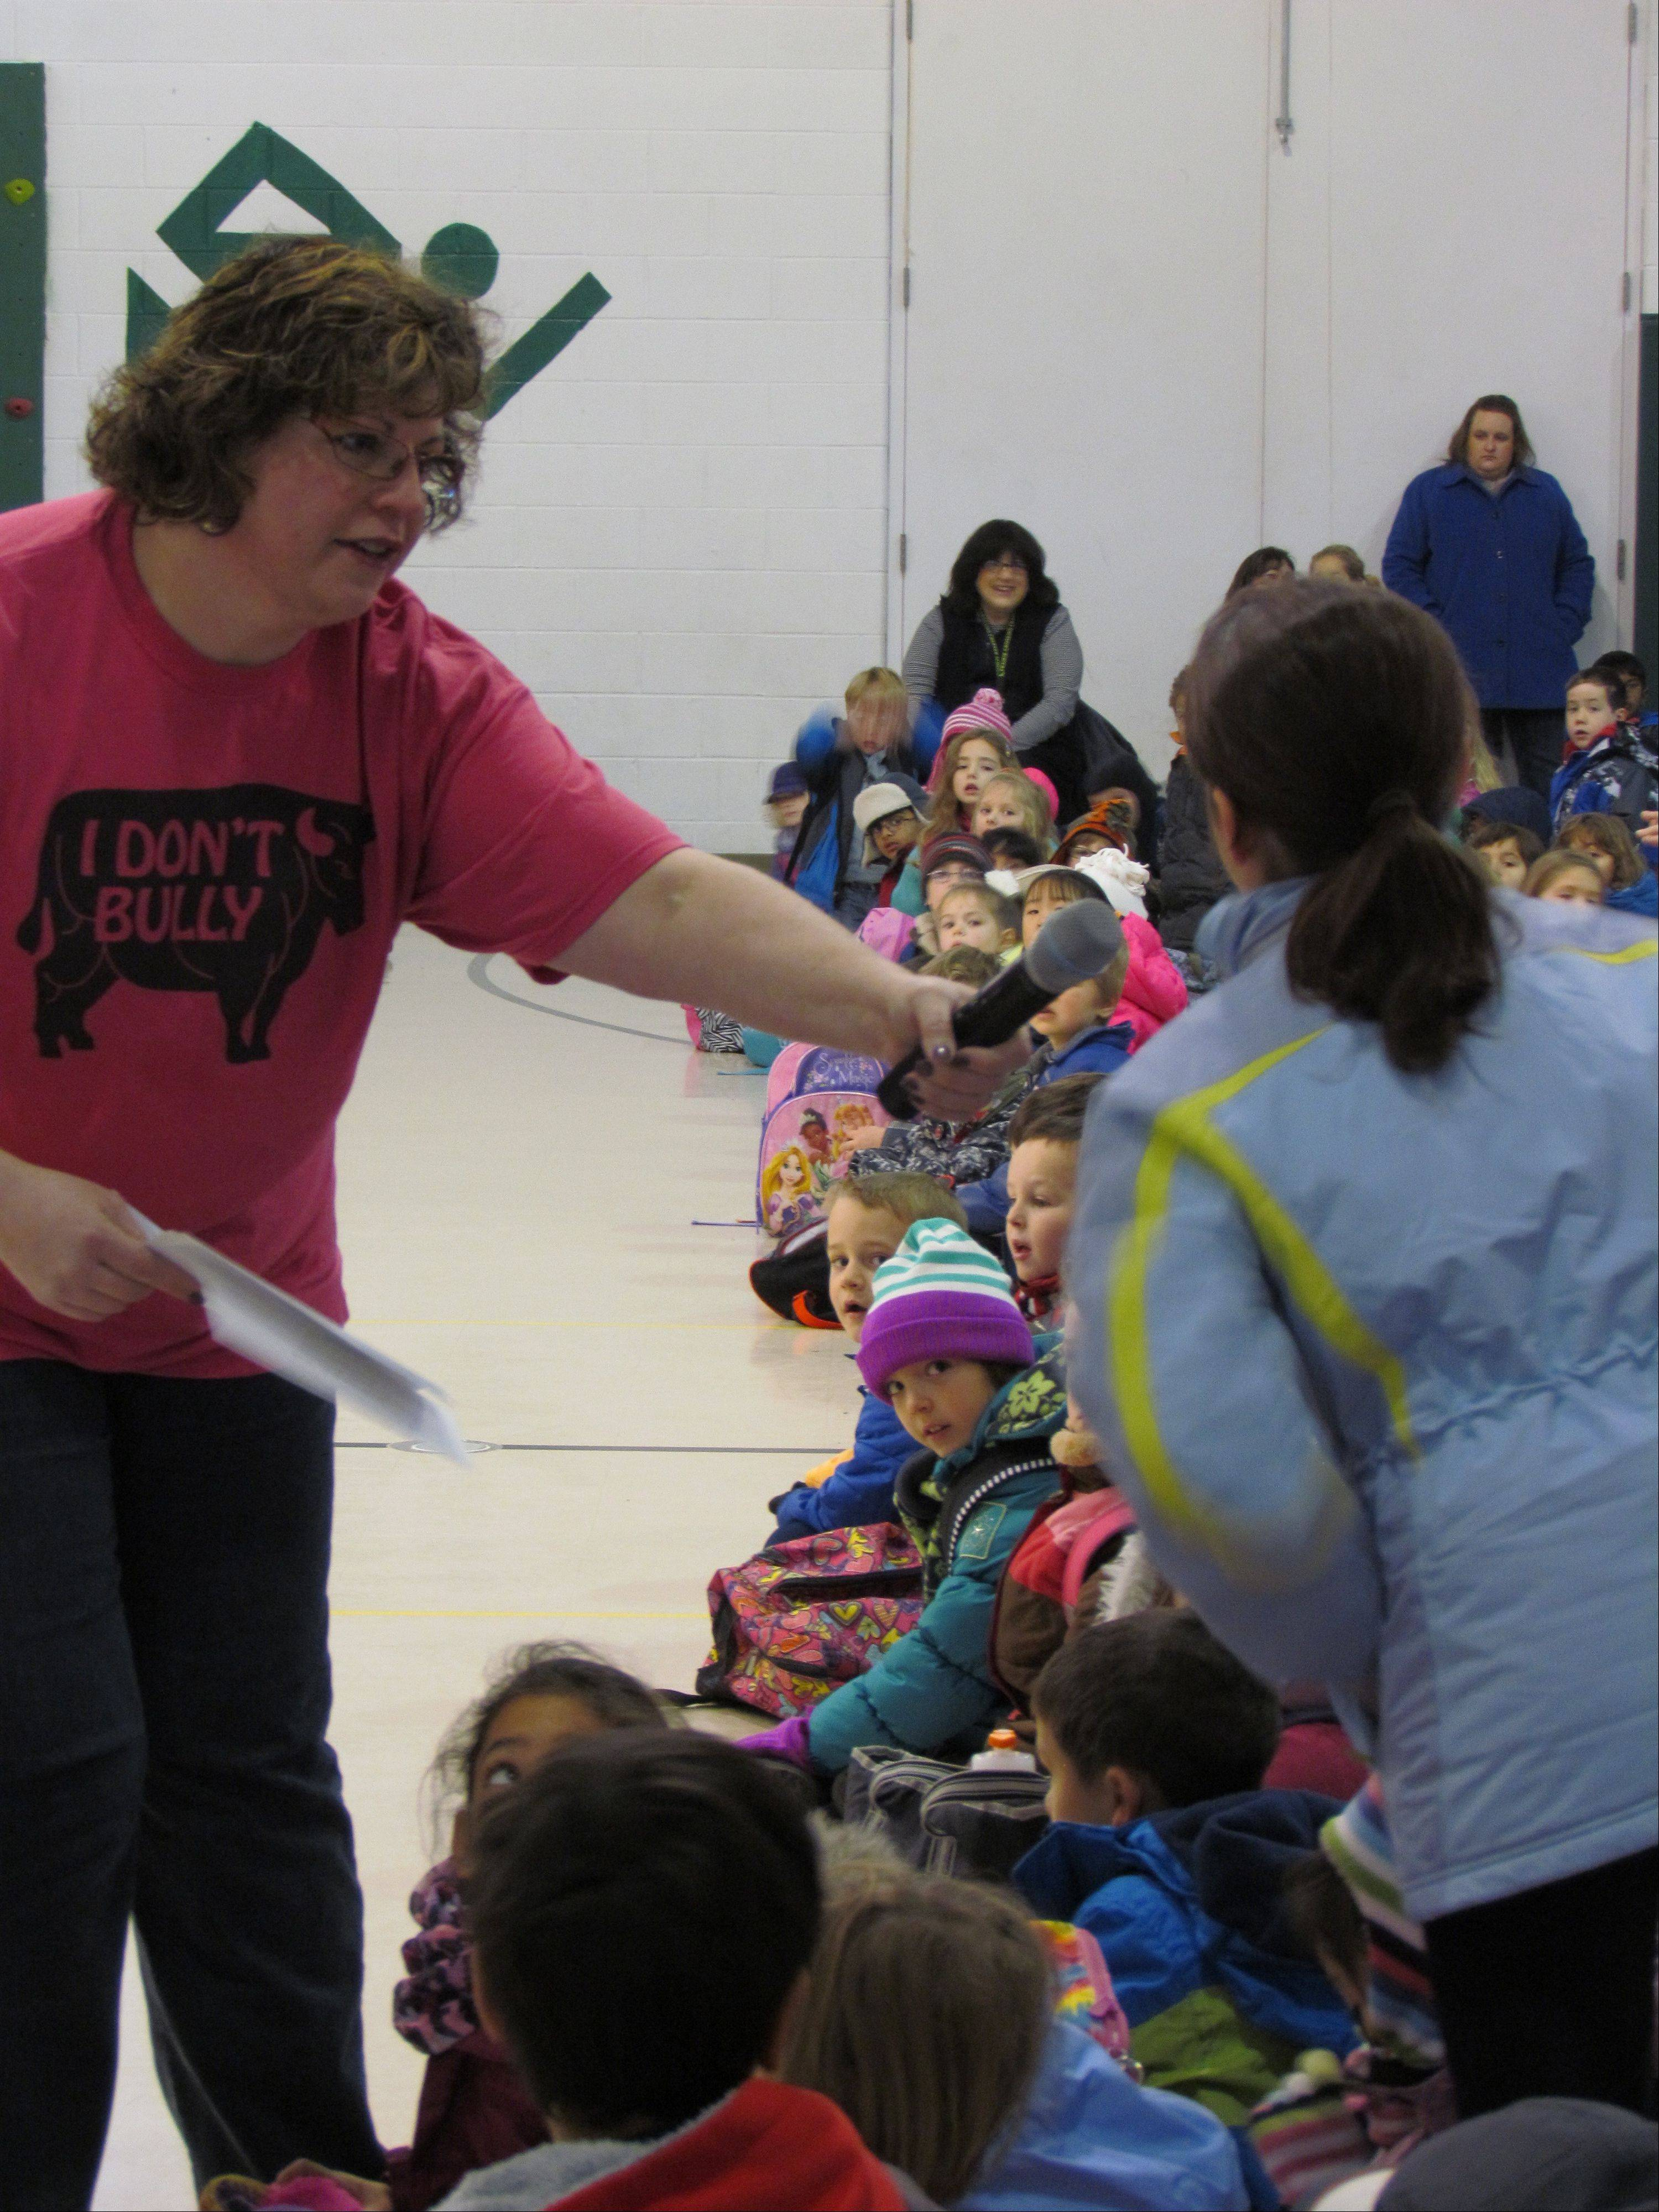 Prairie Crossing in Grayslake launches Bully Awareness Week